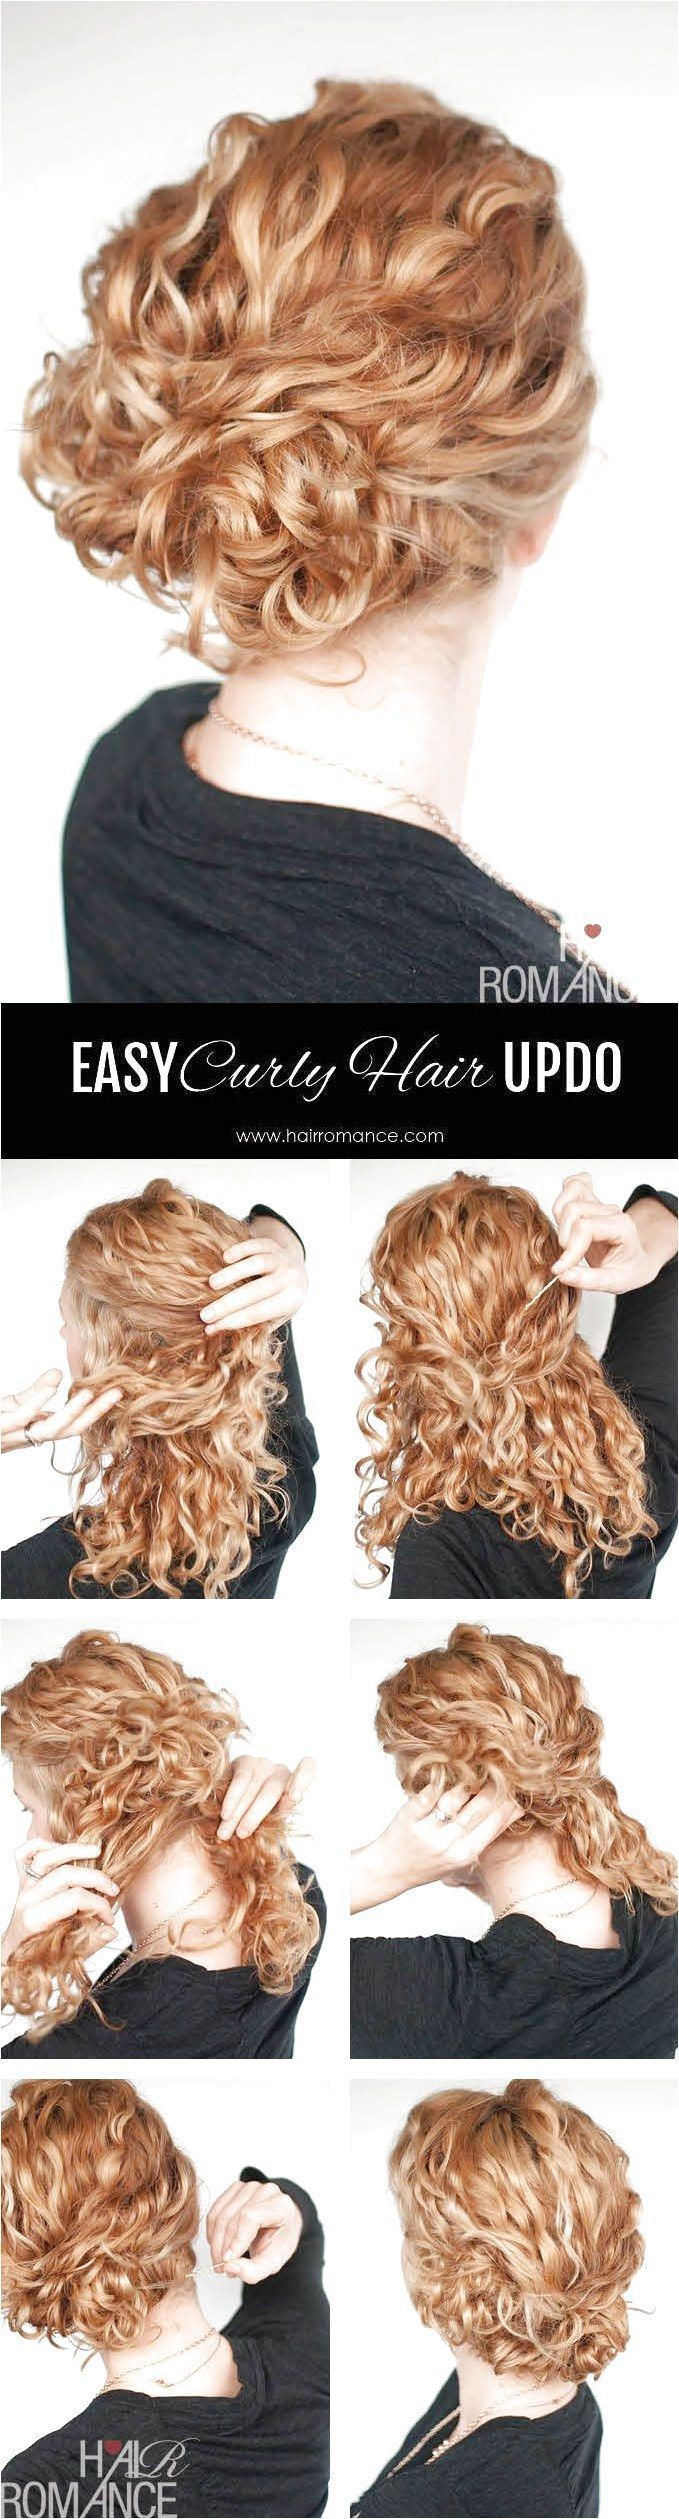 Super Easy Updo Hairstyle Tutorial For Curly Hair Separate A Section On Top Of Your Updo Hairstyles Tutorials Easy Updo Hairstyles Tutorials Curly Hair Styles